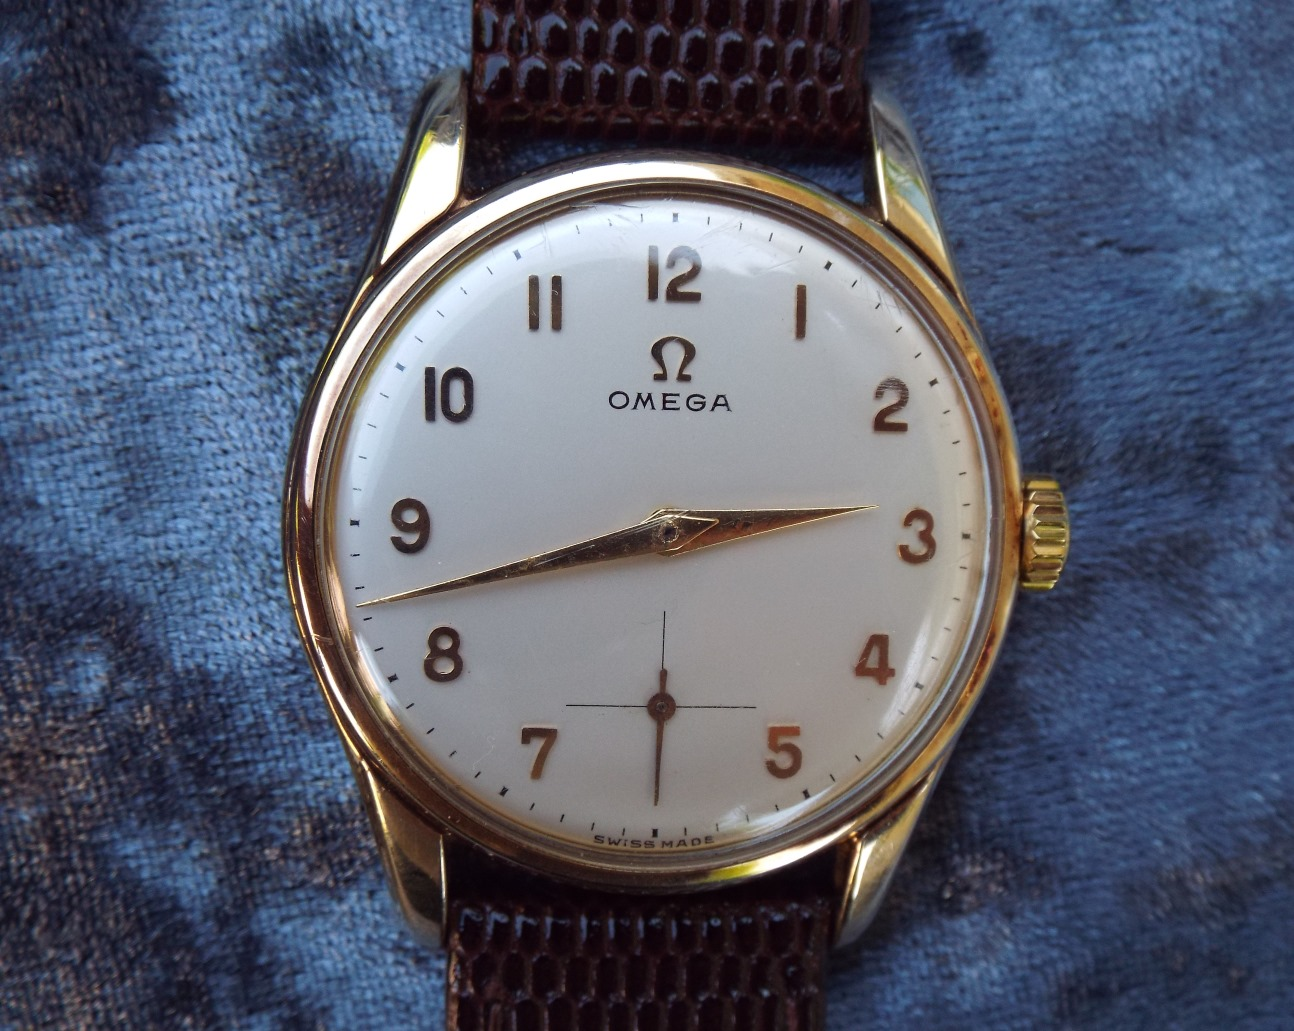 wound all guide top and wind inspired by classical peseux the period winding is thin movement watch watches powered neo robust eta manual i post a of time hand